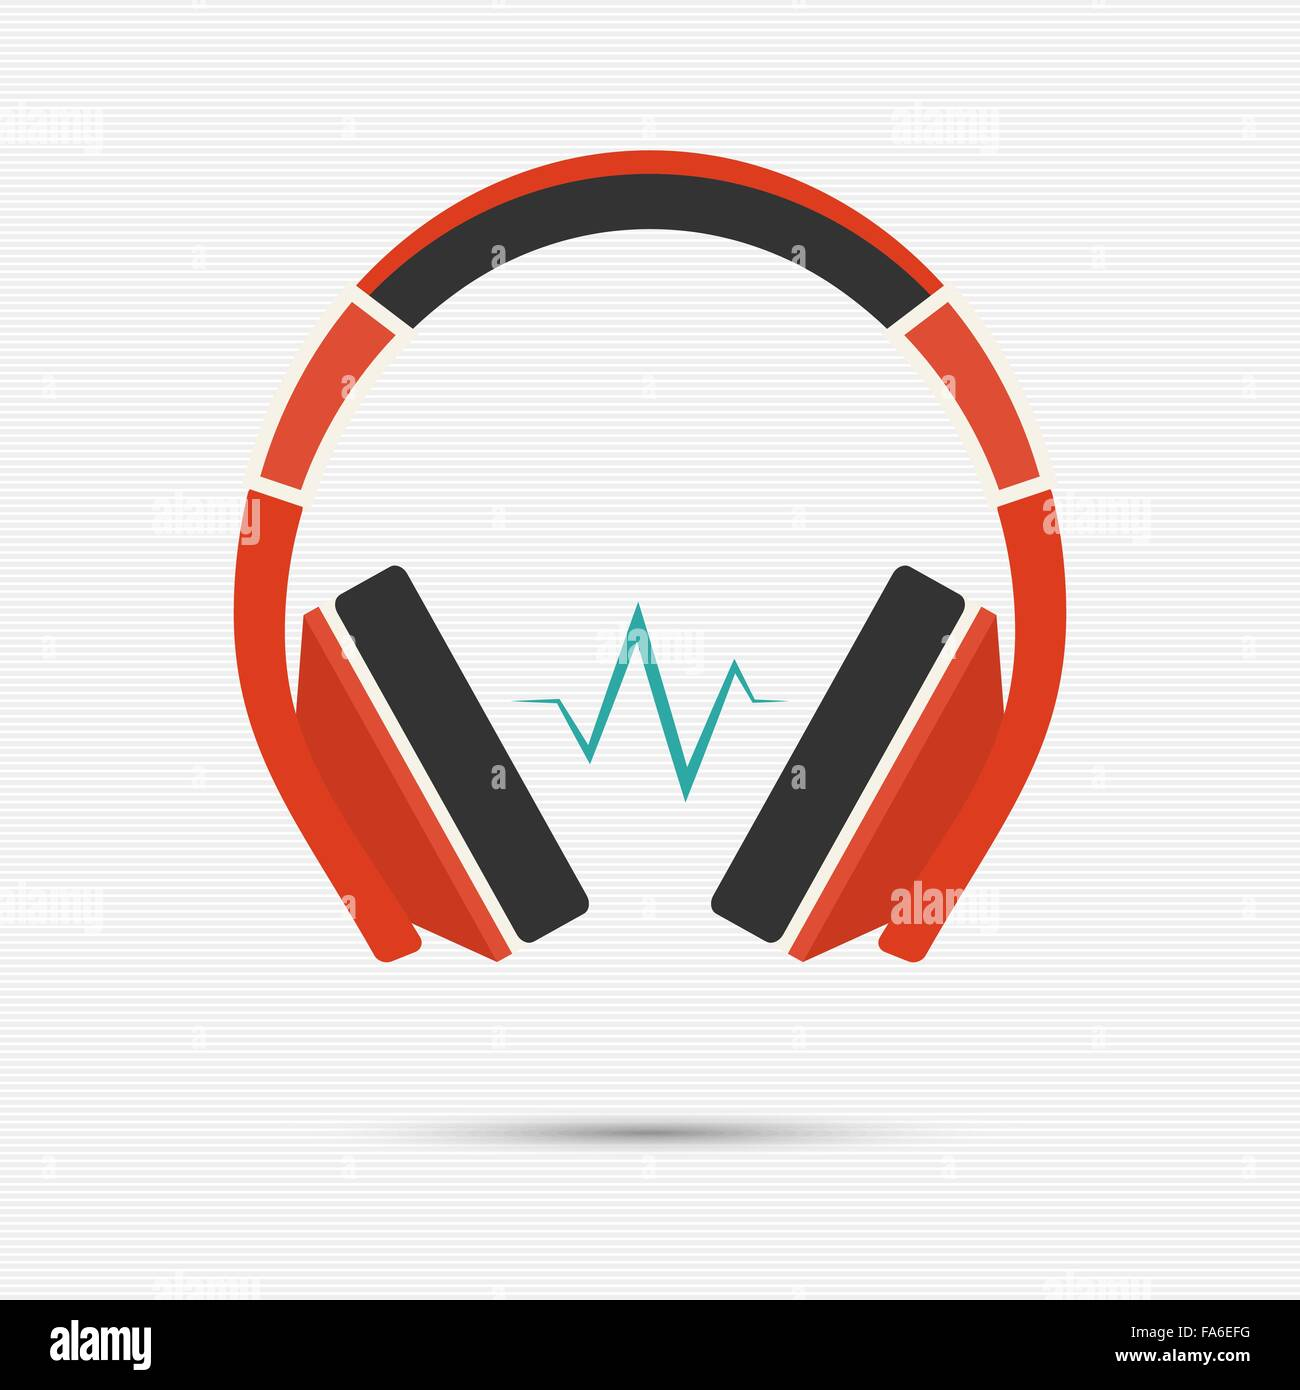 Vector illustration of headphones for your design - Stock Image